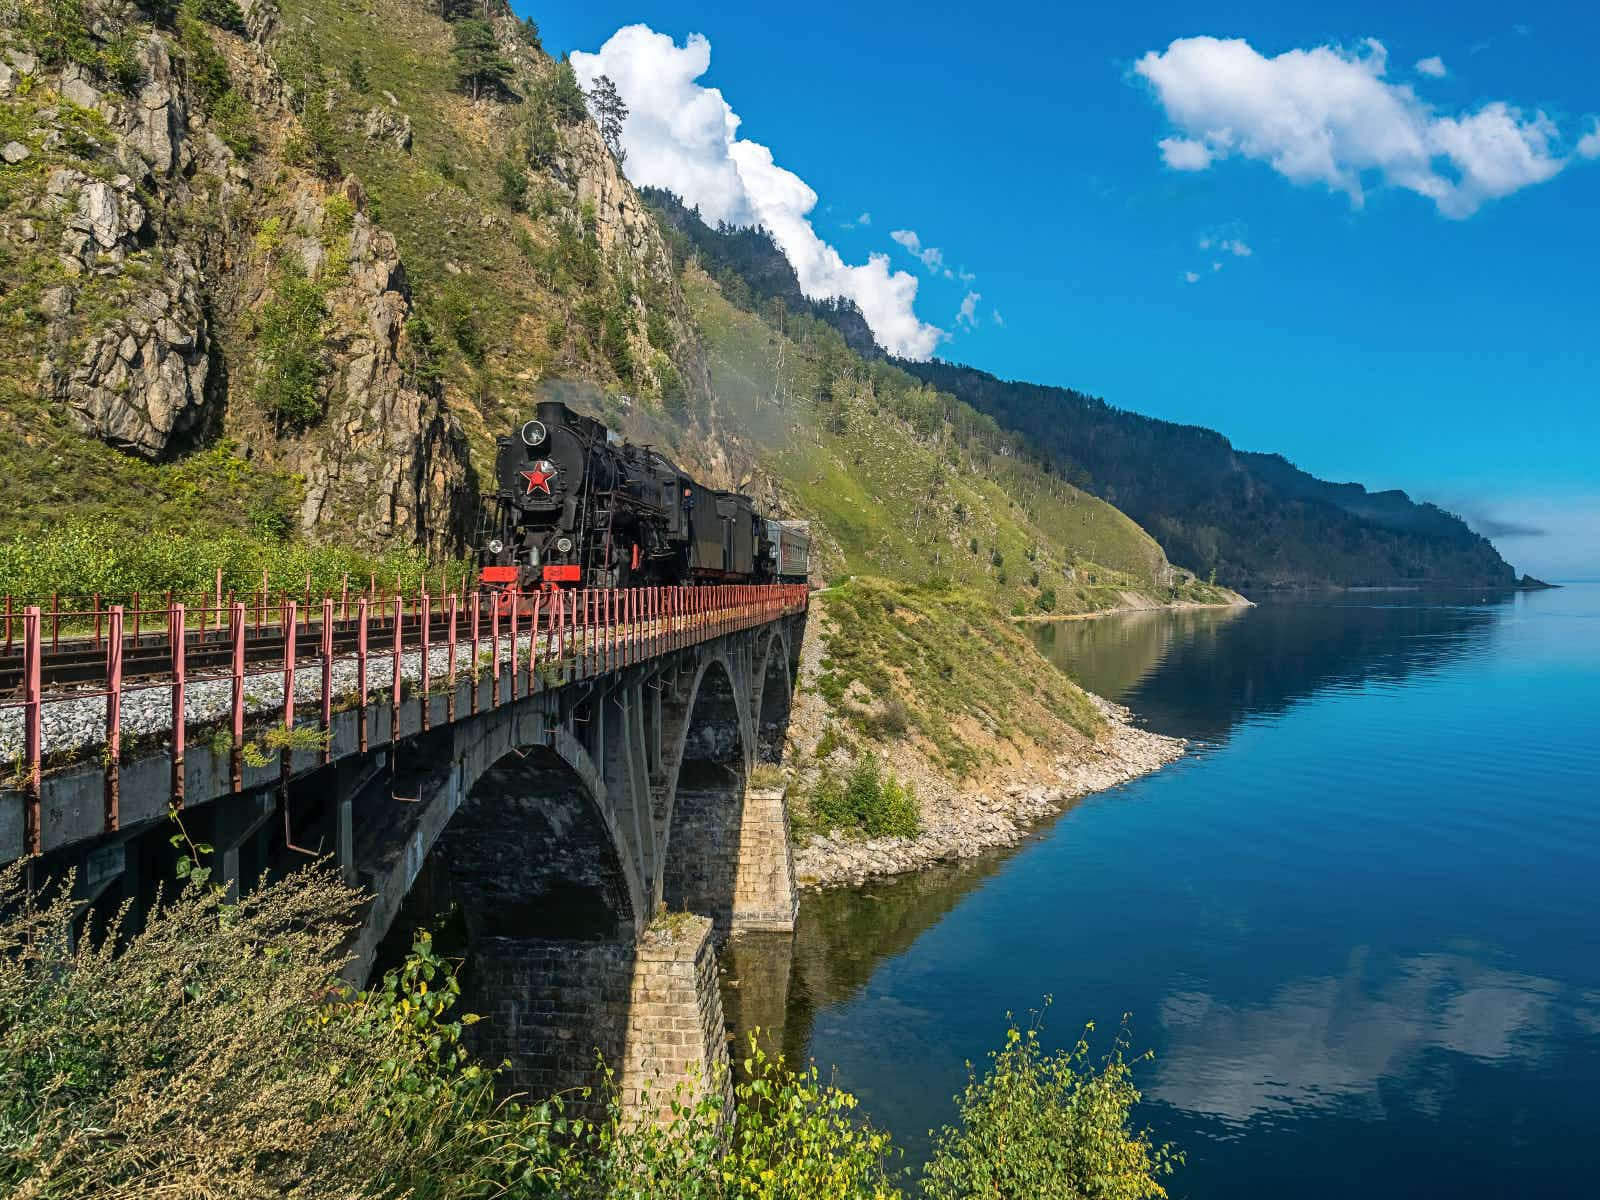 The Siberian welcome: the best guides along the world's longest train journey